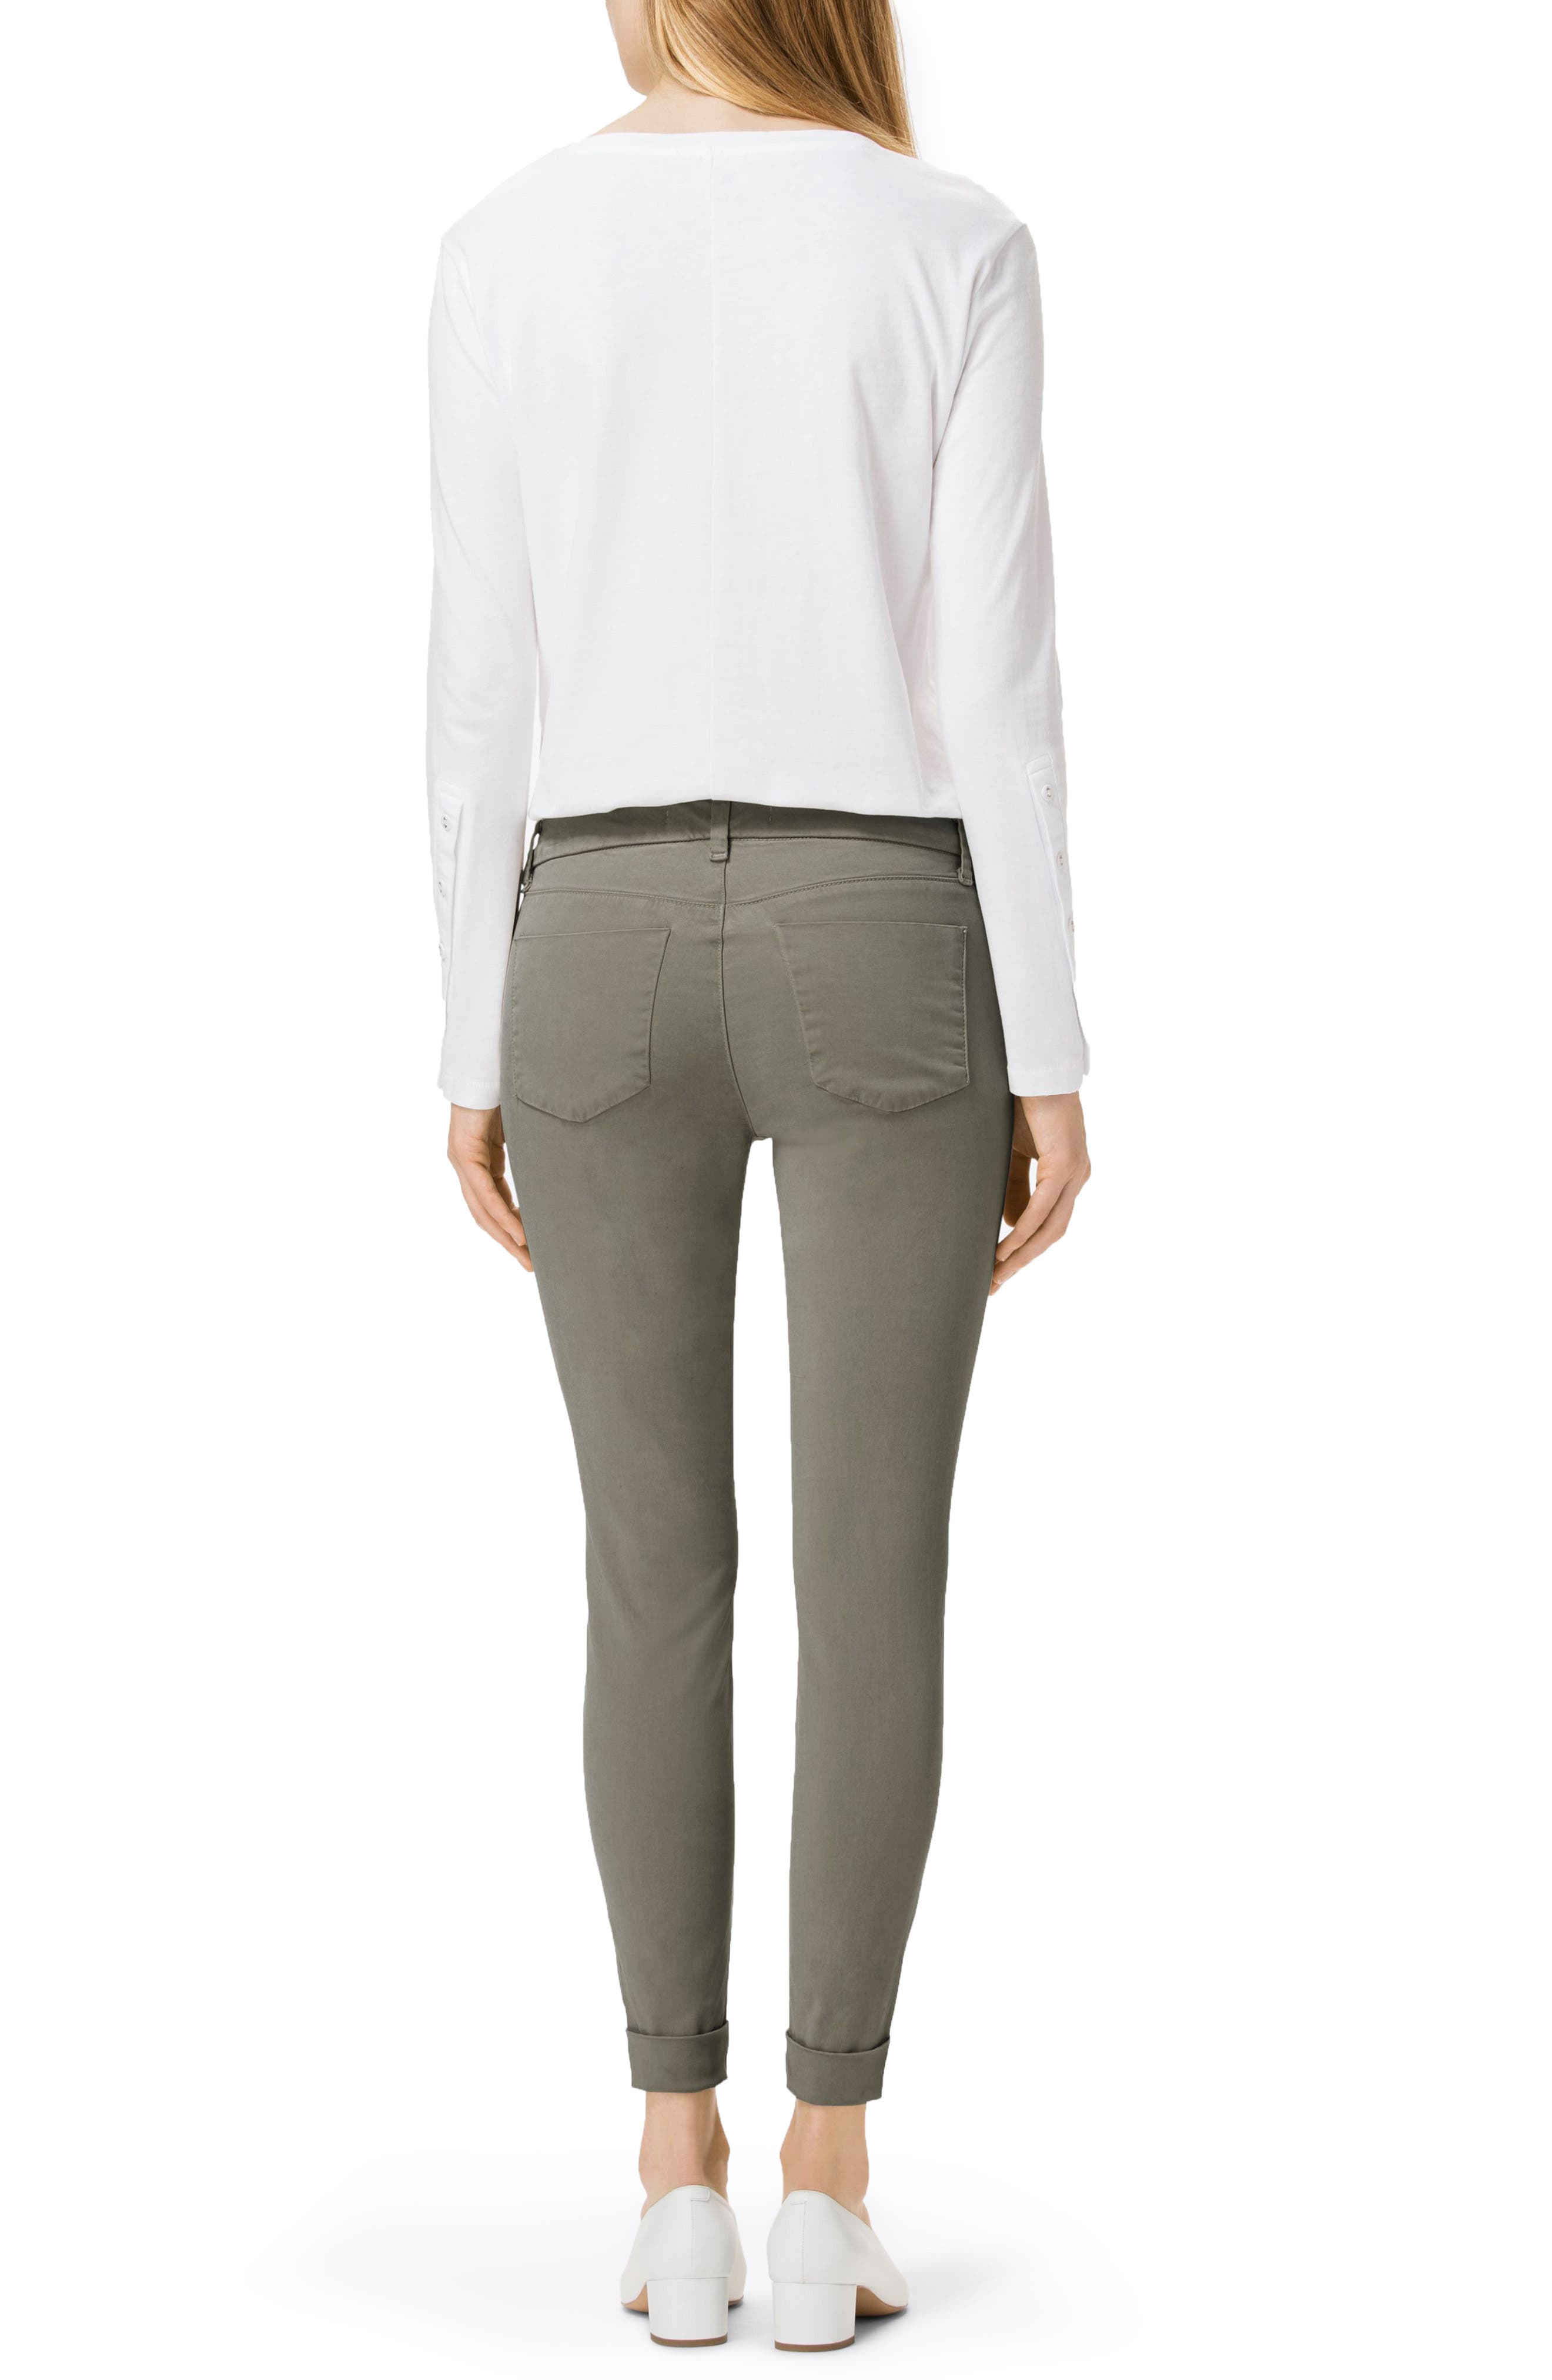 'Anja' Cuffed Crop Skinny Jeans,                             Alternate thumbnail 13, color,